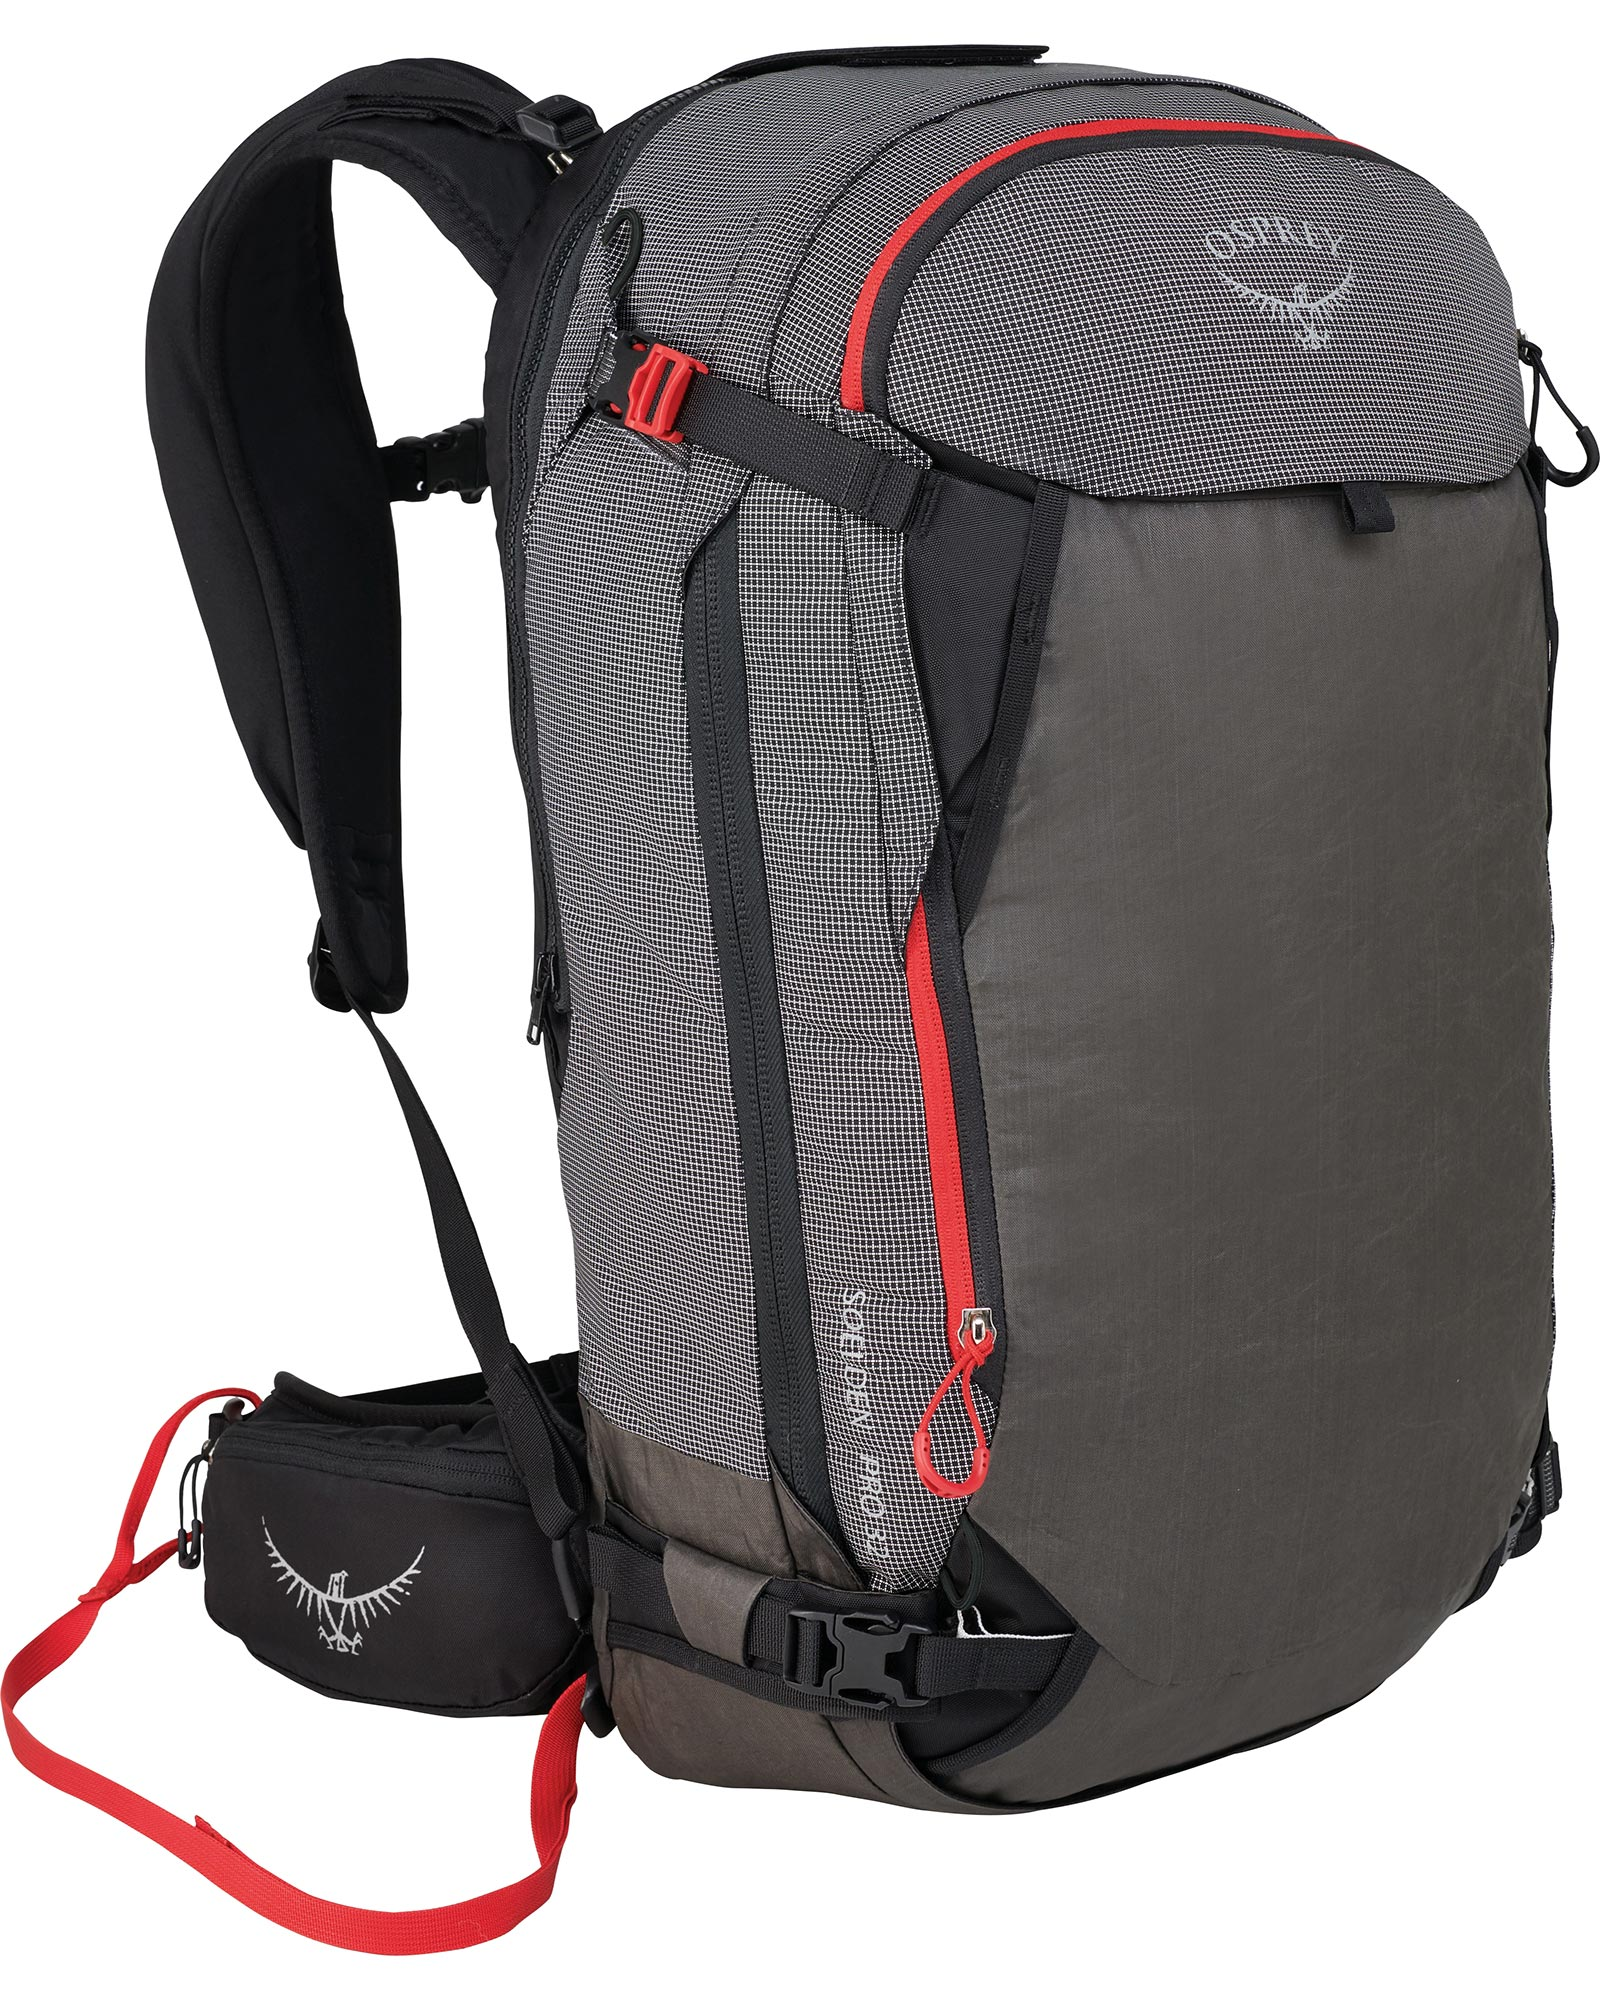 Osprey Men's Soelden Pro Avy 32 Backpack 0